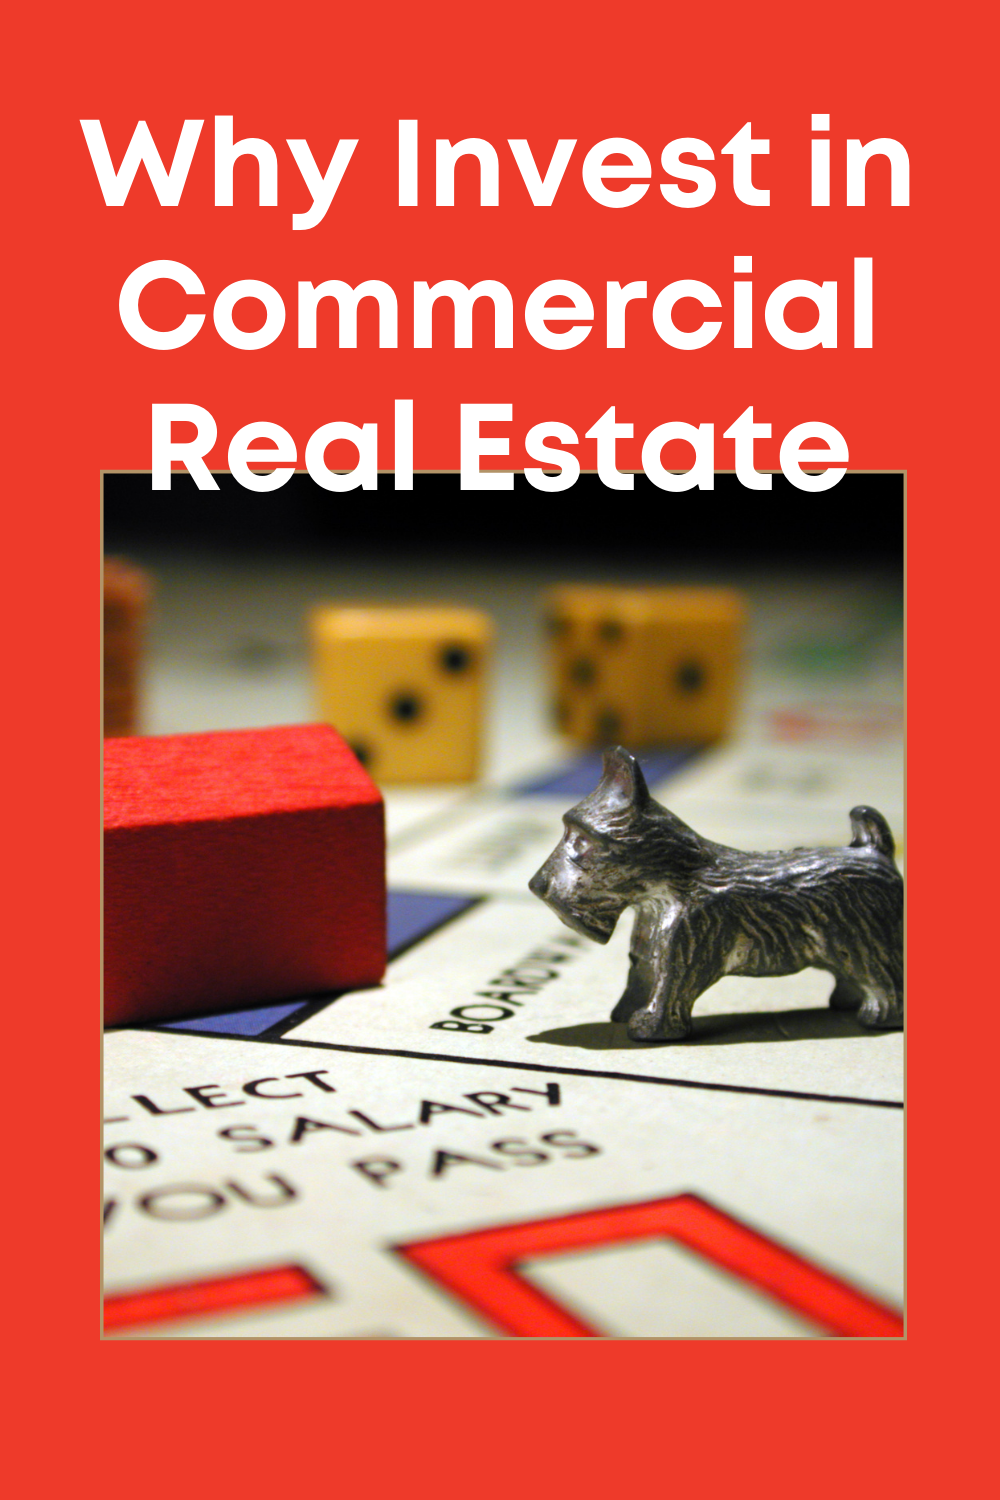 Why invest in commercial real estate? Here are 7 good reasons, whether you are a long time property investor or just about to dip your toe in the water.